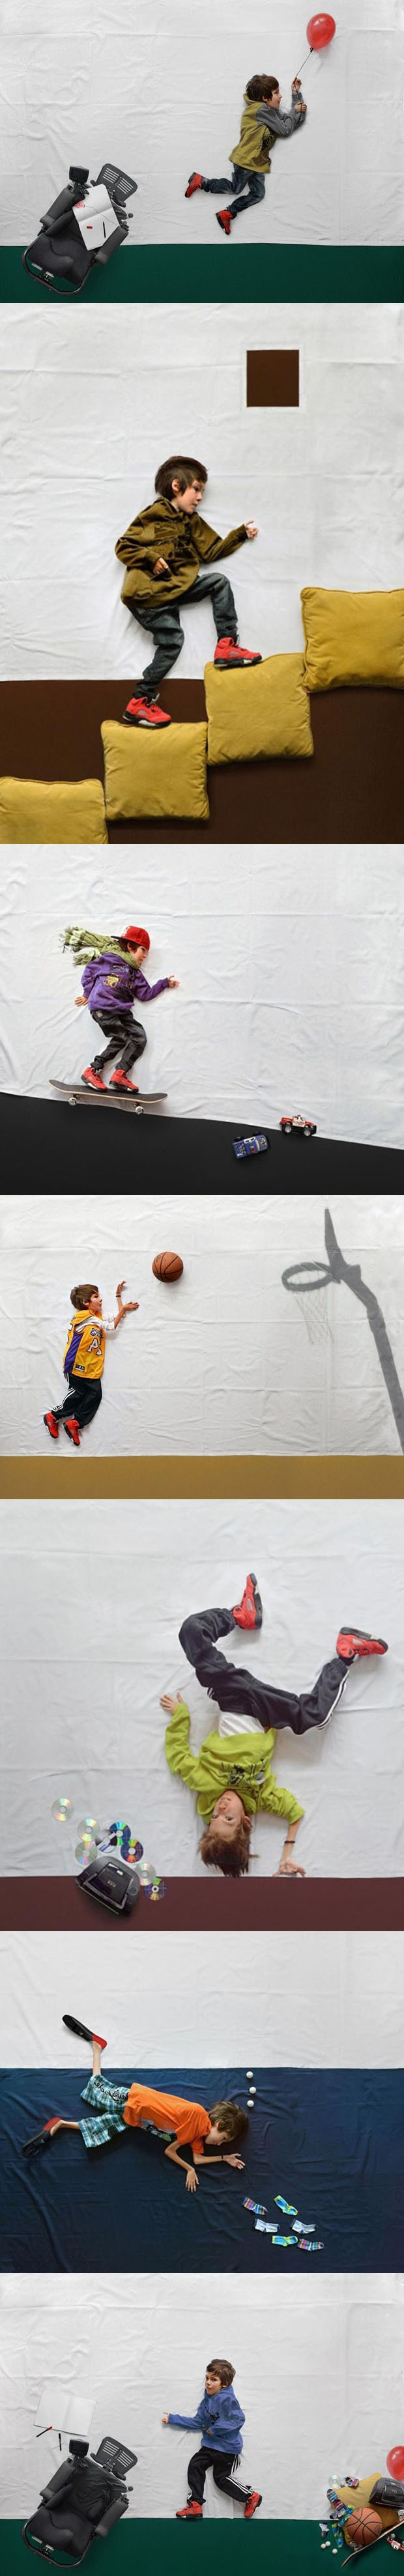 A boy with muscular dystrophy has his imagination brought to life through photos.